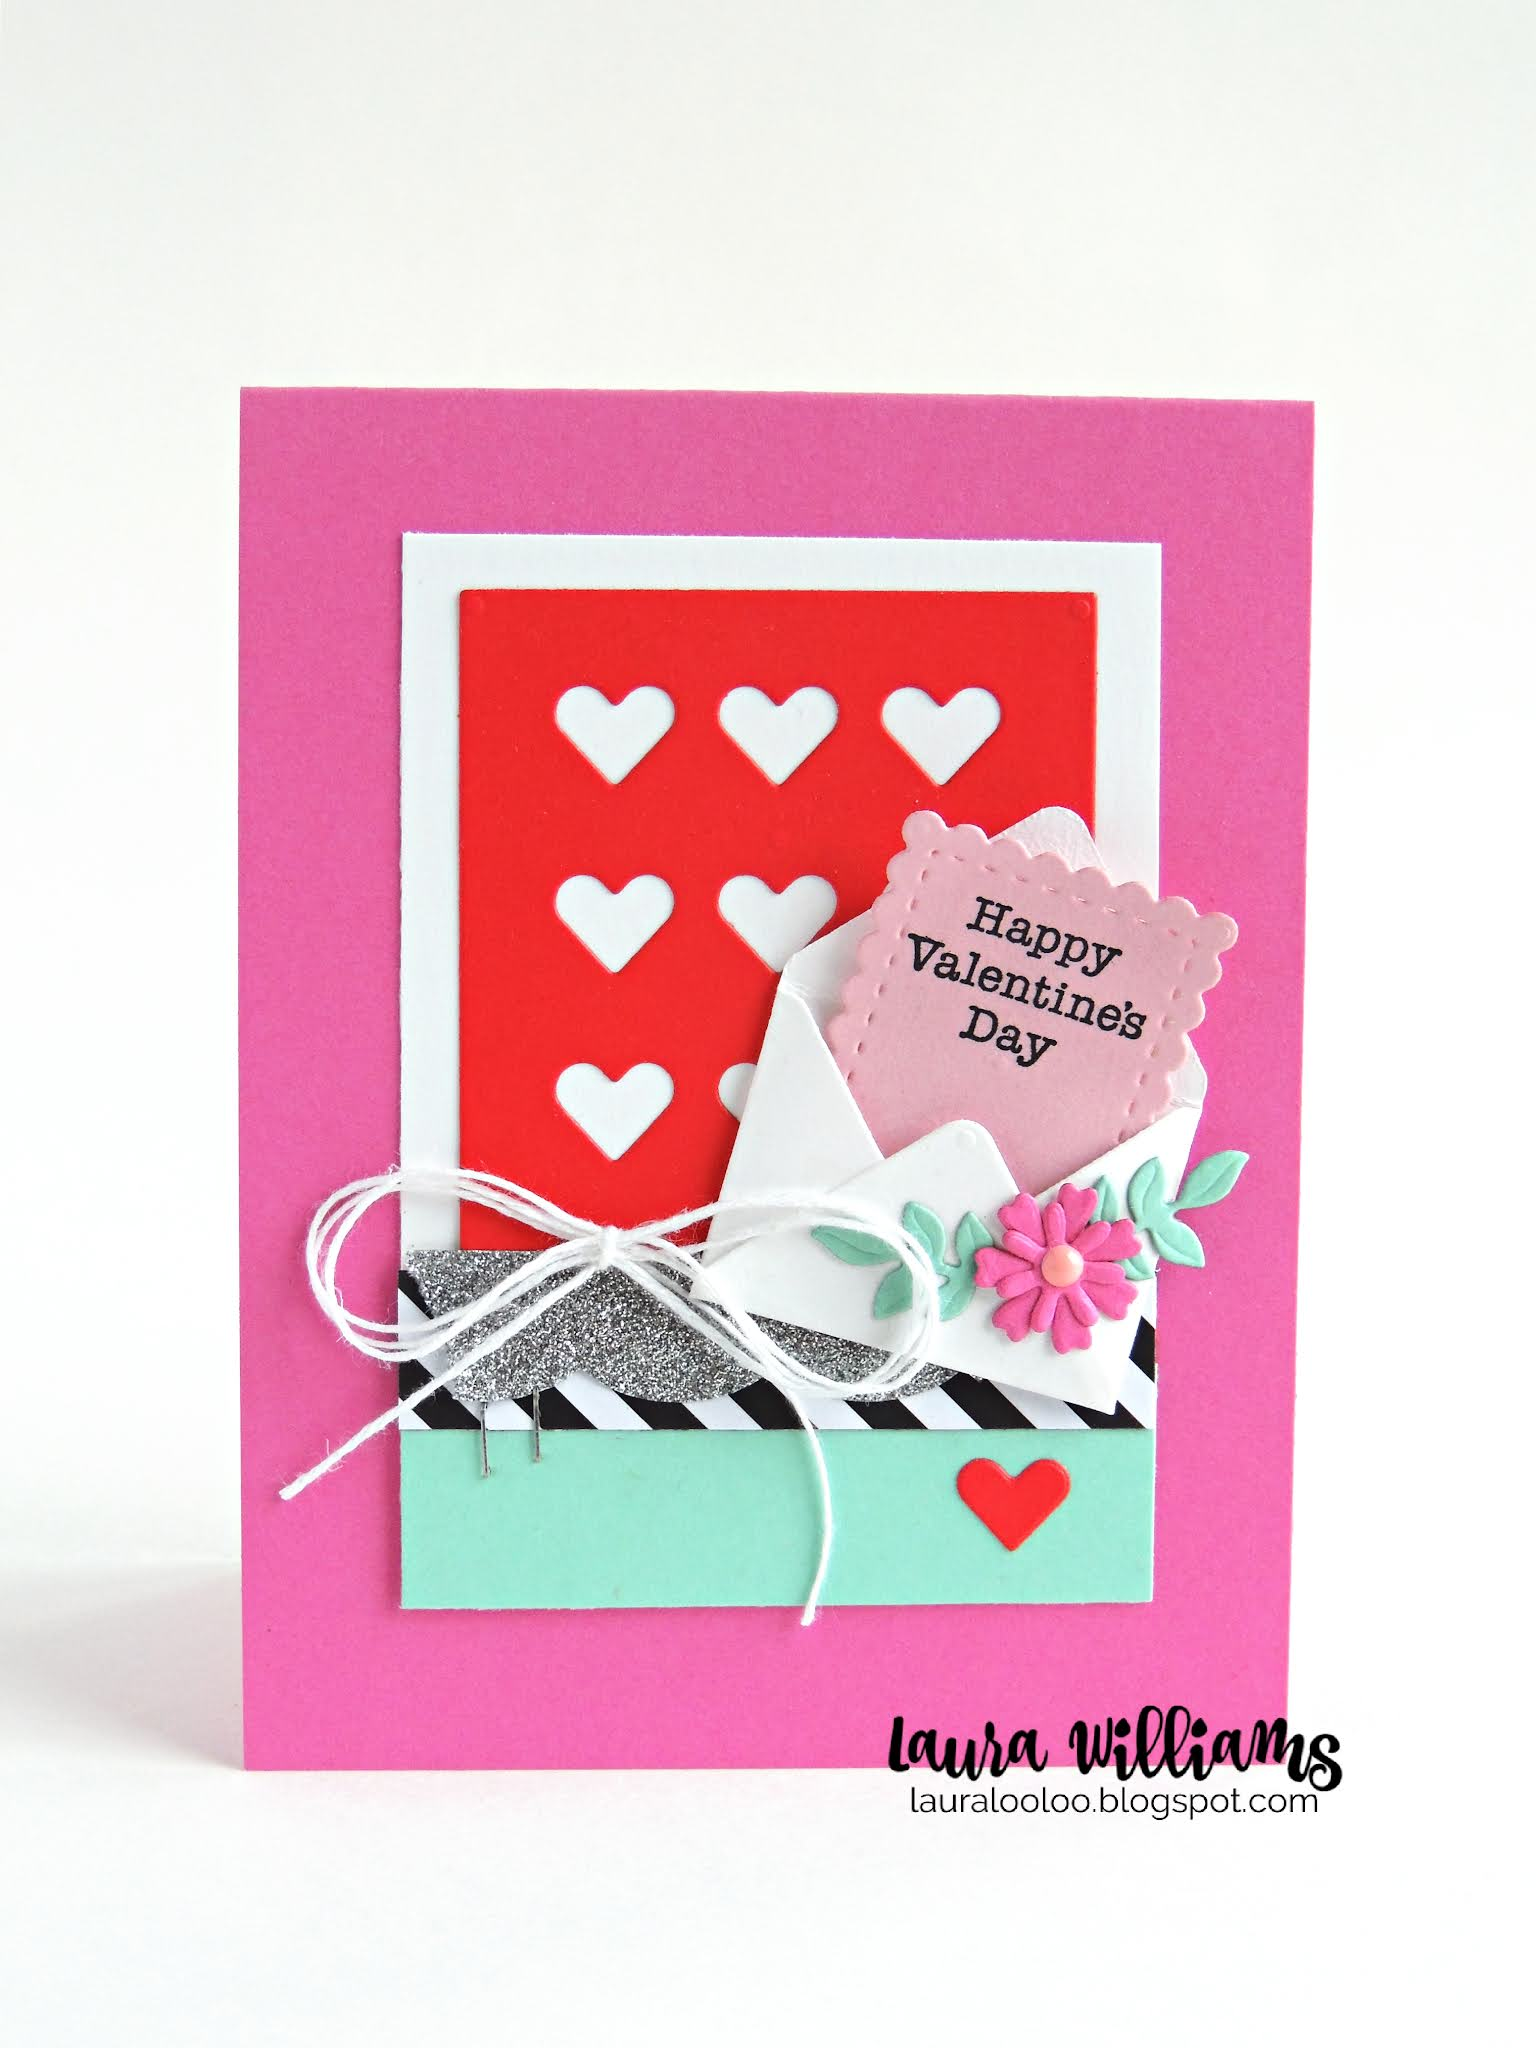 Handmade valentine card with a baby envelope and hearts background that says Happy Valentine's Day, with pink flowers and a white bow.